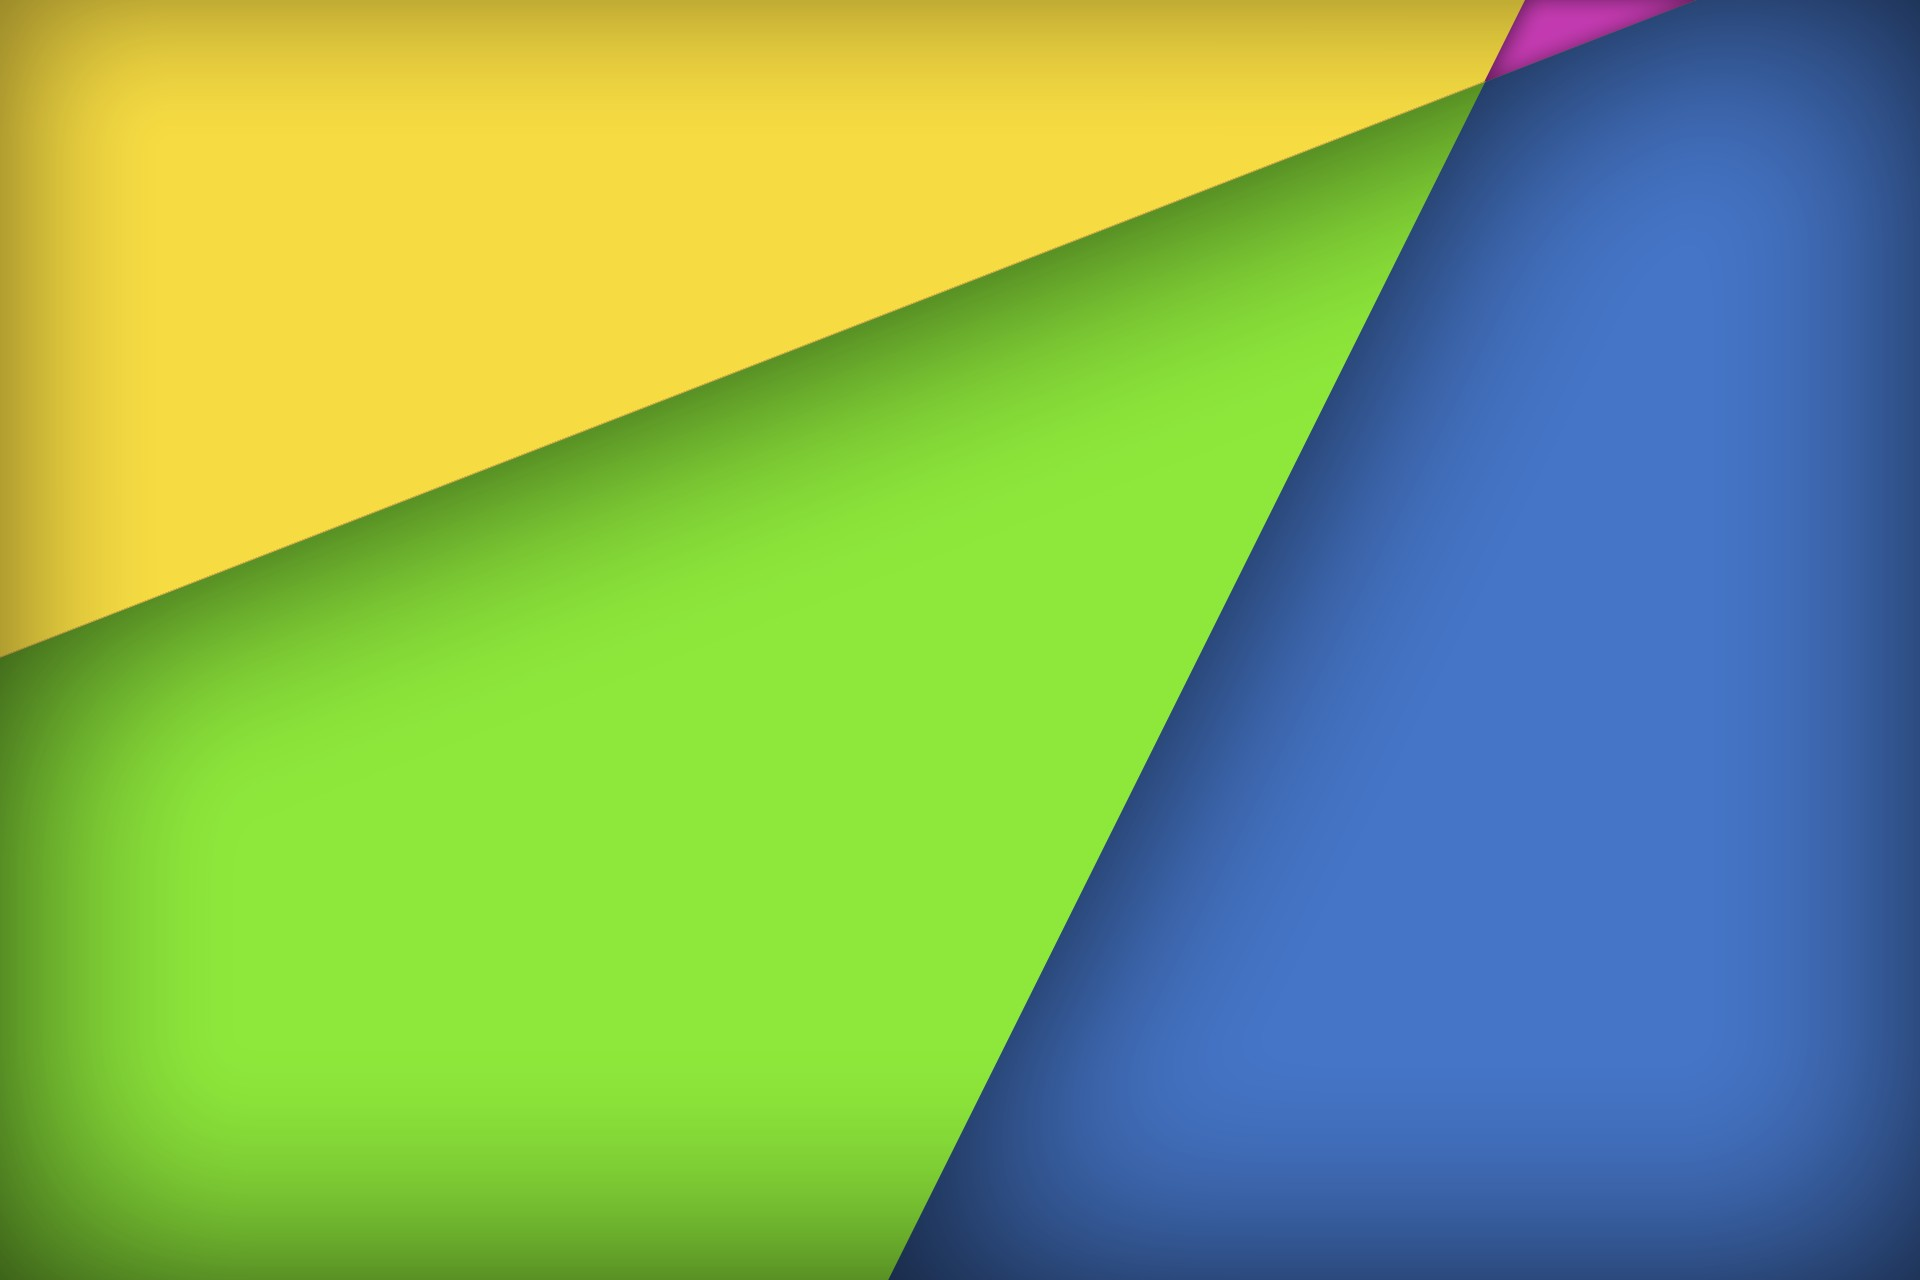 Nexus 5 Wallpaper 1920x1080: Nexus Wallpaper ·① Download Free Awesome Backgrounds For